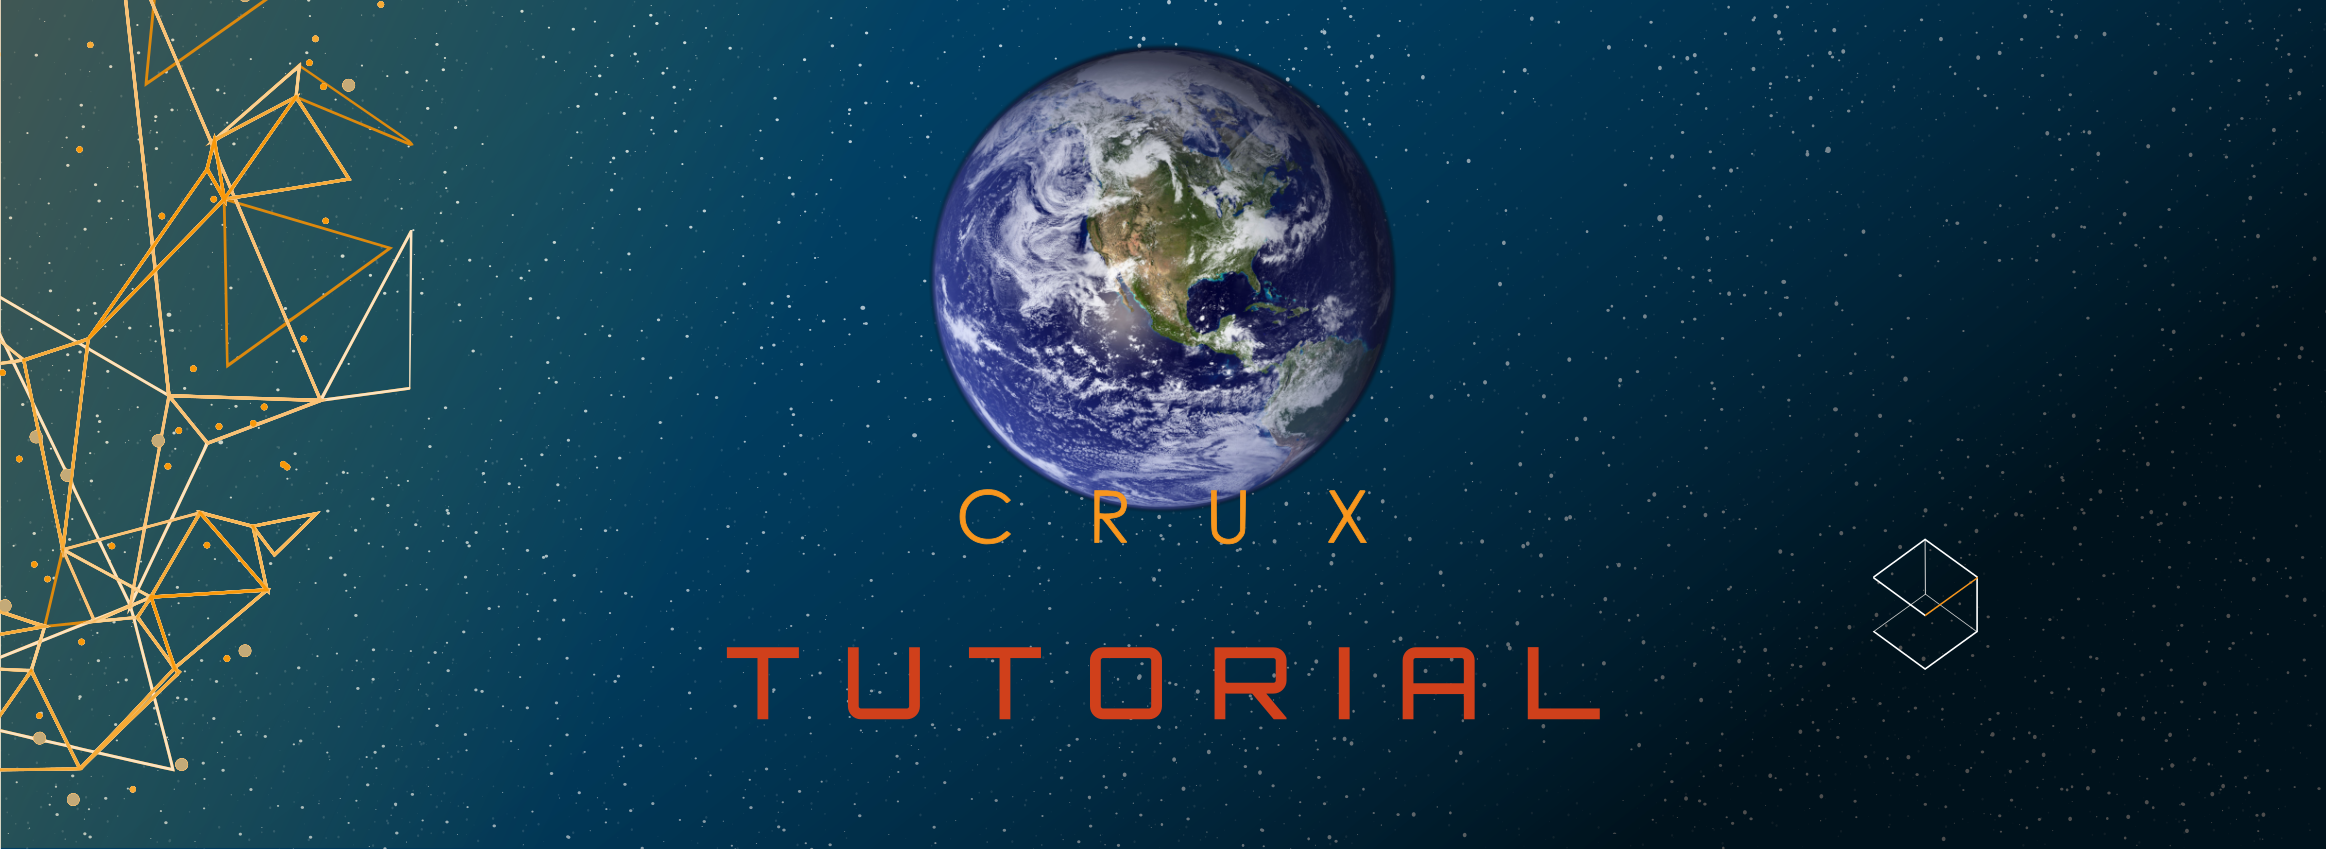 Crux Earth Assignment: Getting Started